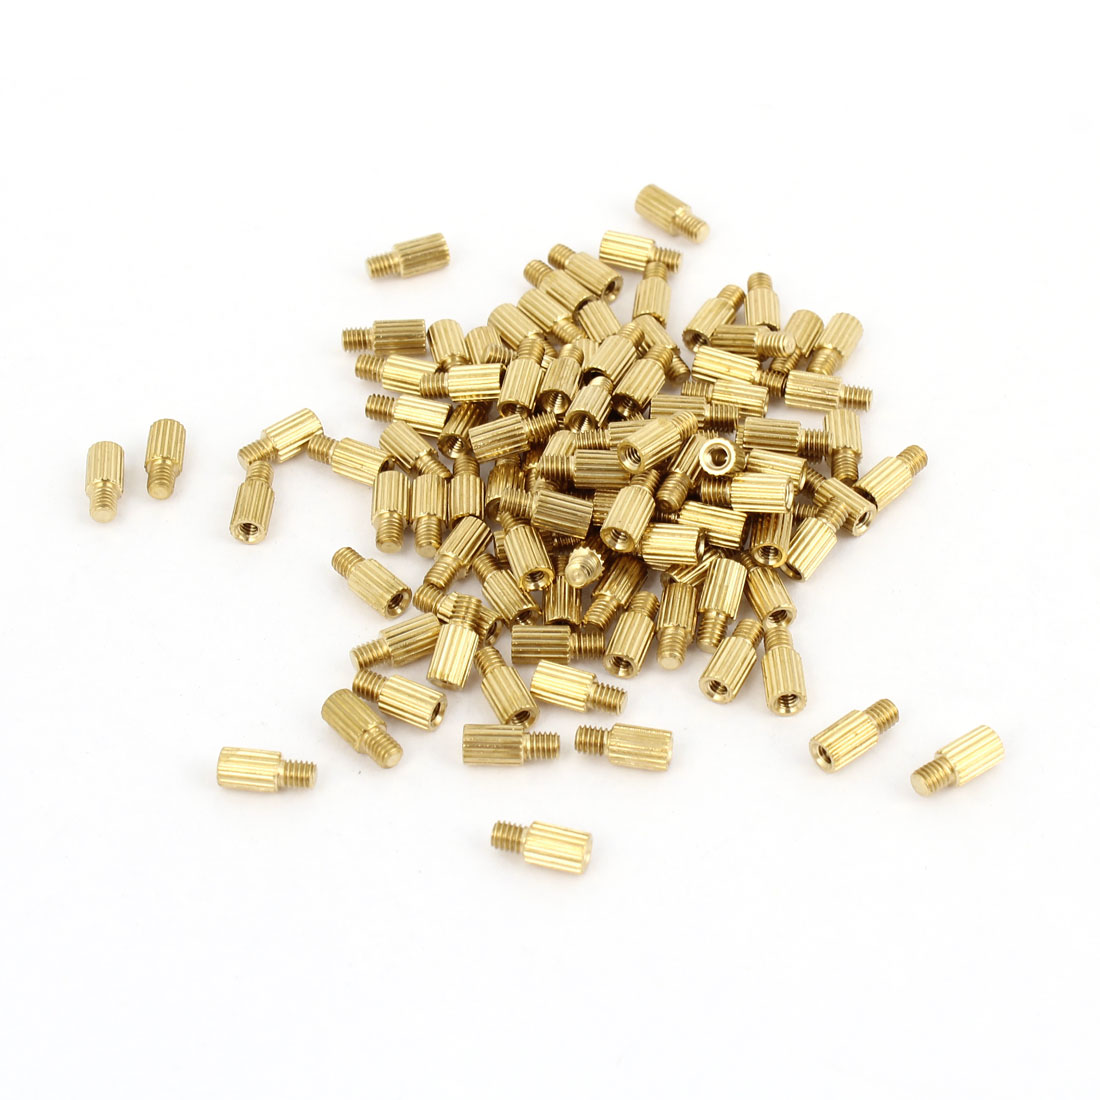 100Pcs Male to Female Threaded PCB Board Brass Pillars Standoff M2x5mm